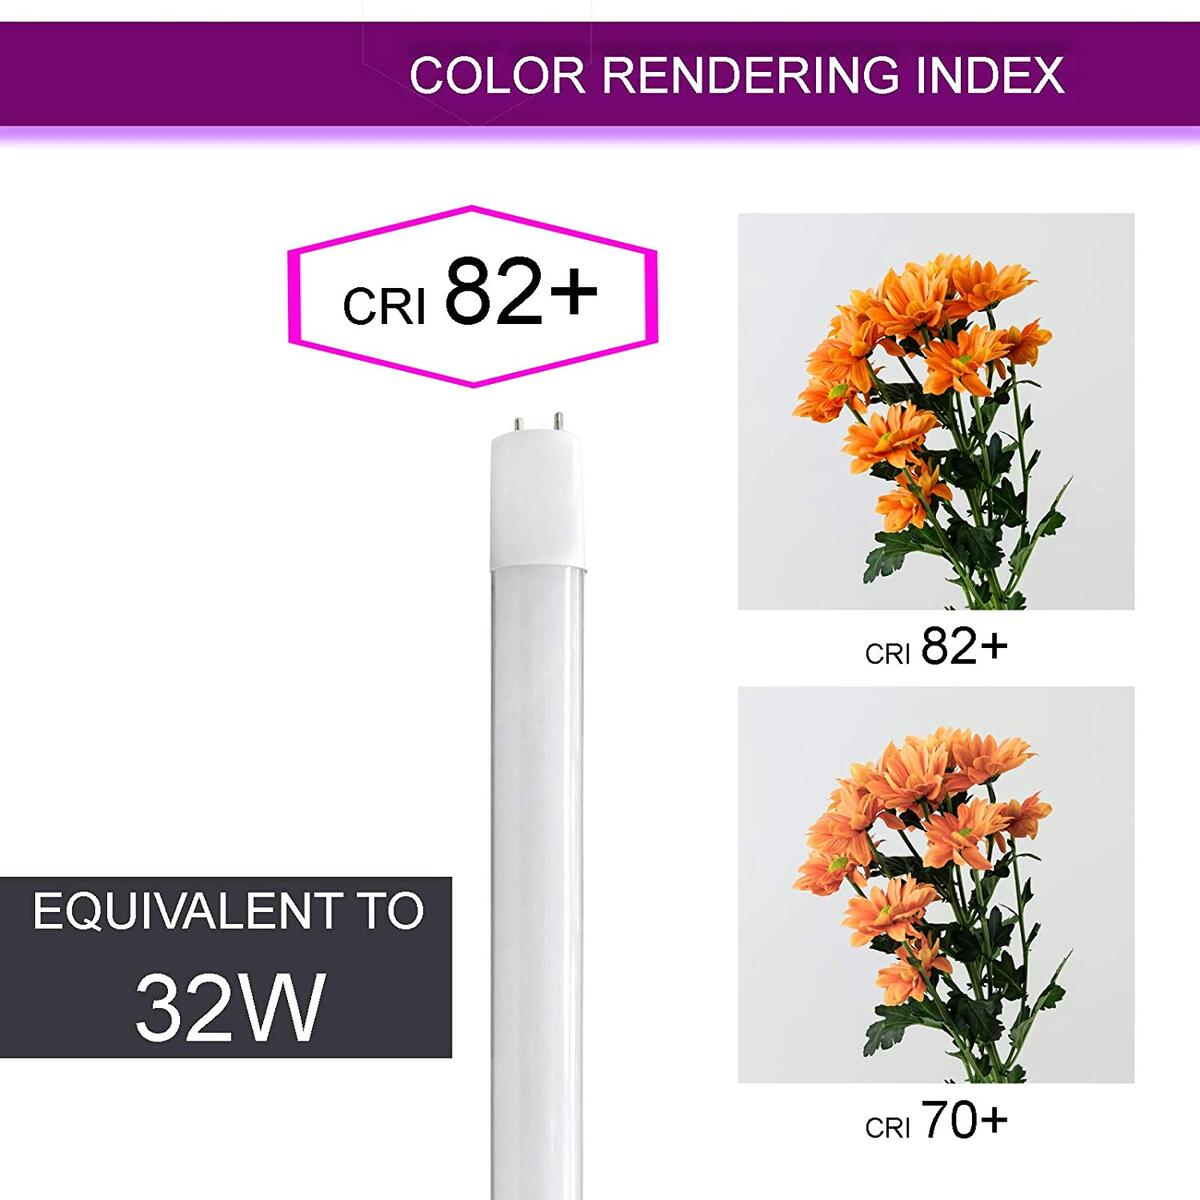 4FT T8 LED Tube,Fluorescent, Frosted Cover 14-Watt T8 Medium bi-pin Base 1700 Lumens; 25W-32W Fluorescent Replacement Type B: Ballast Bypass; Double Ended Wiring 48 inch Led Light Bulb - Pack of 4